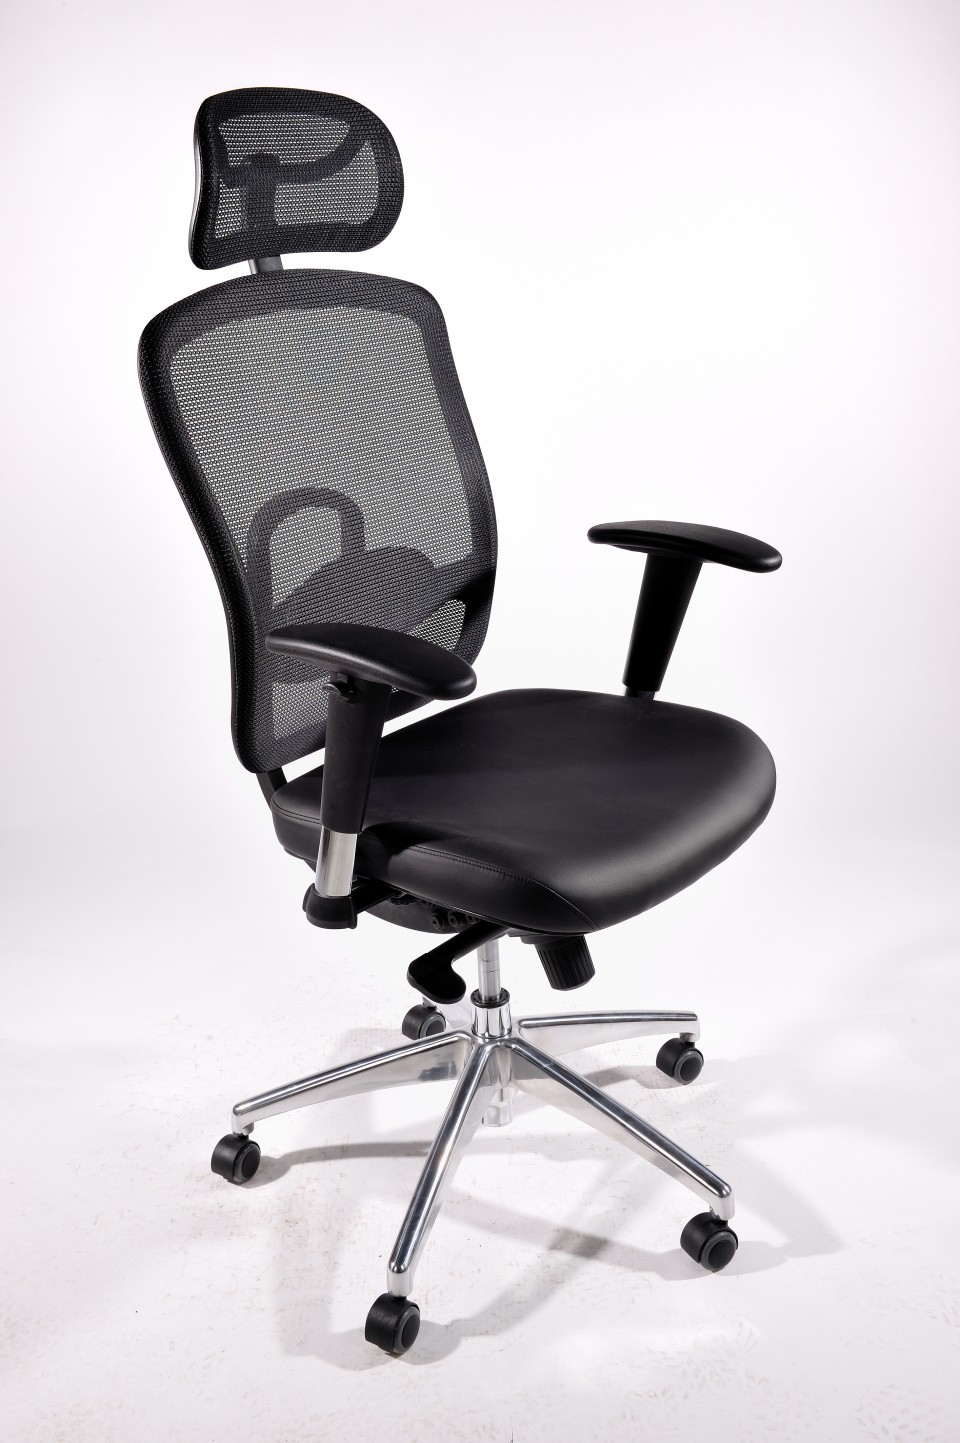 fauteuil de bureau ergonomique ergo seat achat si ges ergonomiques 297 00. Black Bedroom Furniture Sets. Home Design Ideas